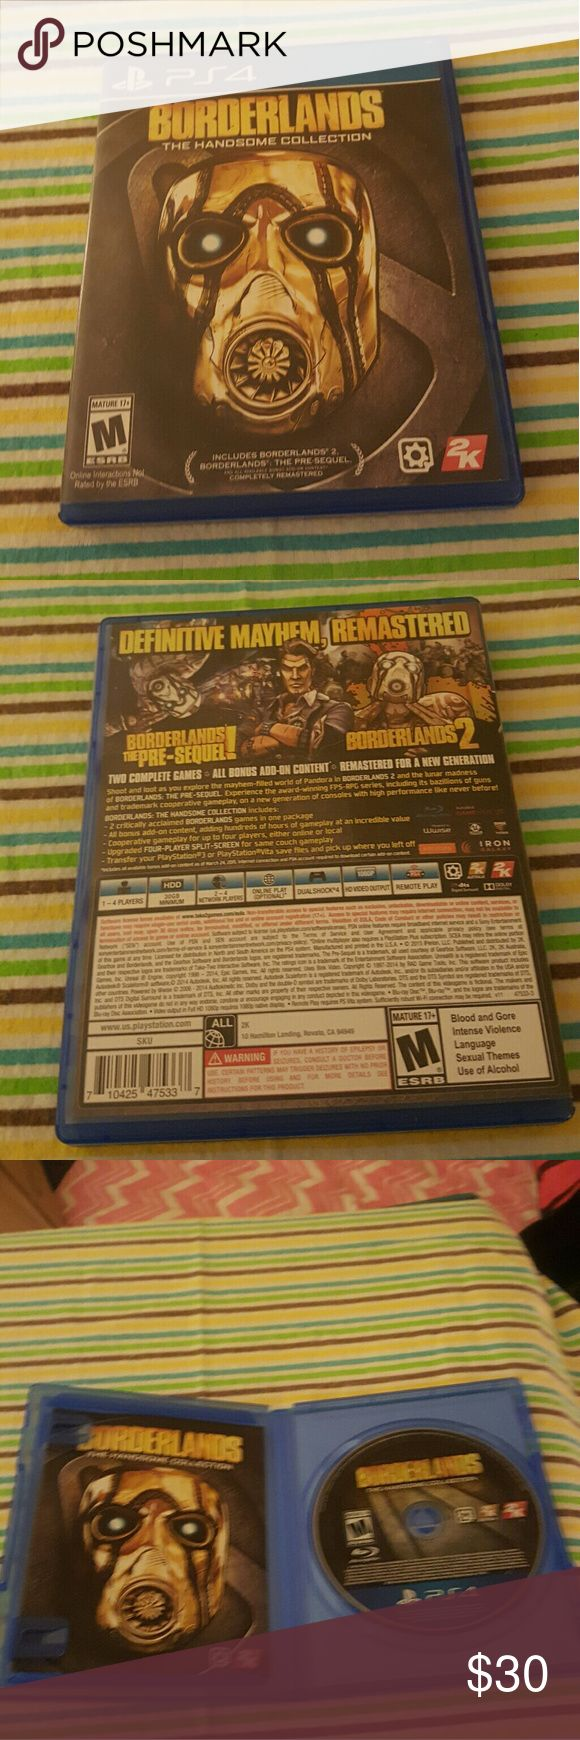 PS4 Borderlands: The Handsome Collection This game includes Borderlands 2, Borderlands the pre-sequel & ALL available add-on Bonus Content COMPLETELY REMASTERED!!  Just like the other PS4 games listed (excluding WWE 2K16)  I don't know much about it,  except for the fact that it was also purchased in a bundle,  plastic wrap removed,  but my son never played it.   **REASONABLE OFFERS ACCEPTED ONLY!! ** Other